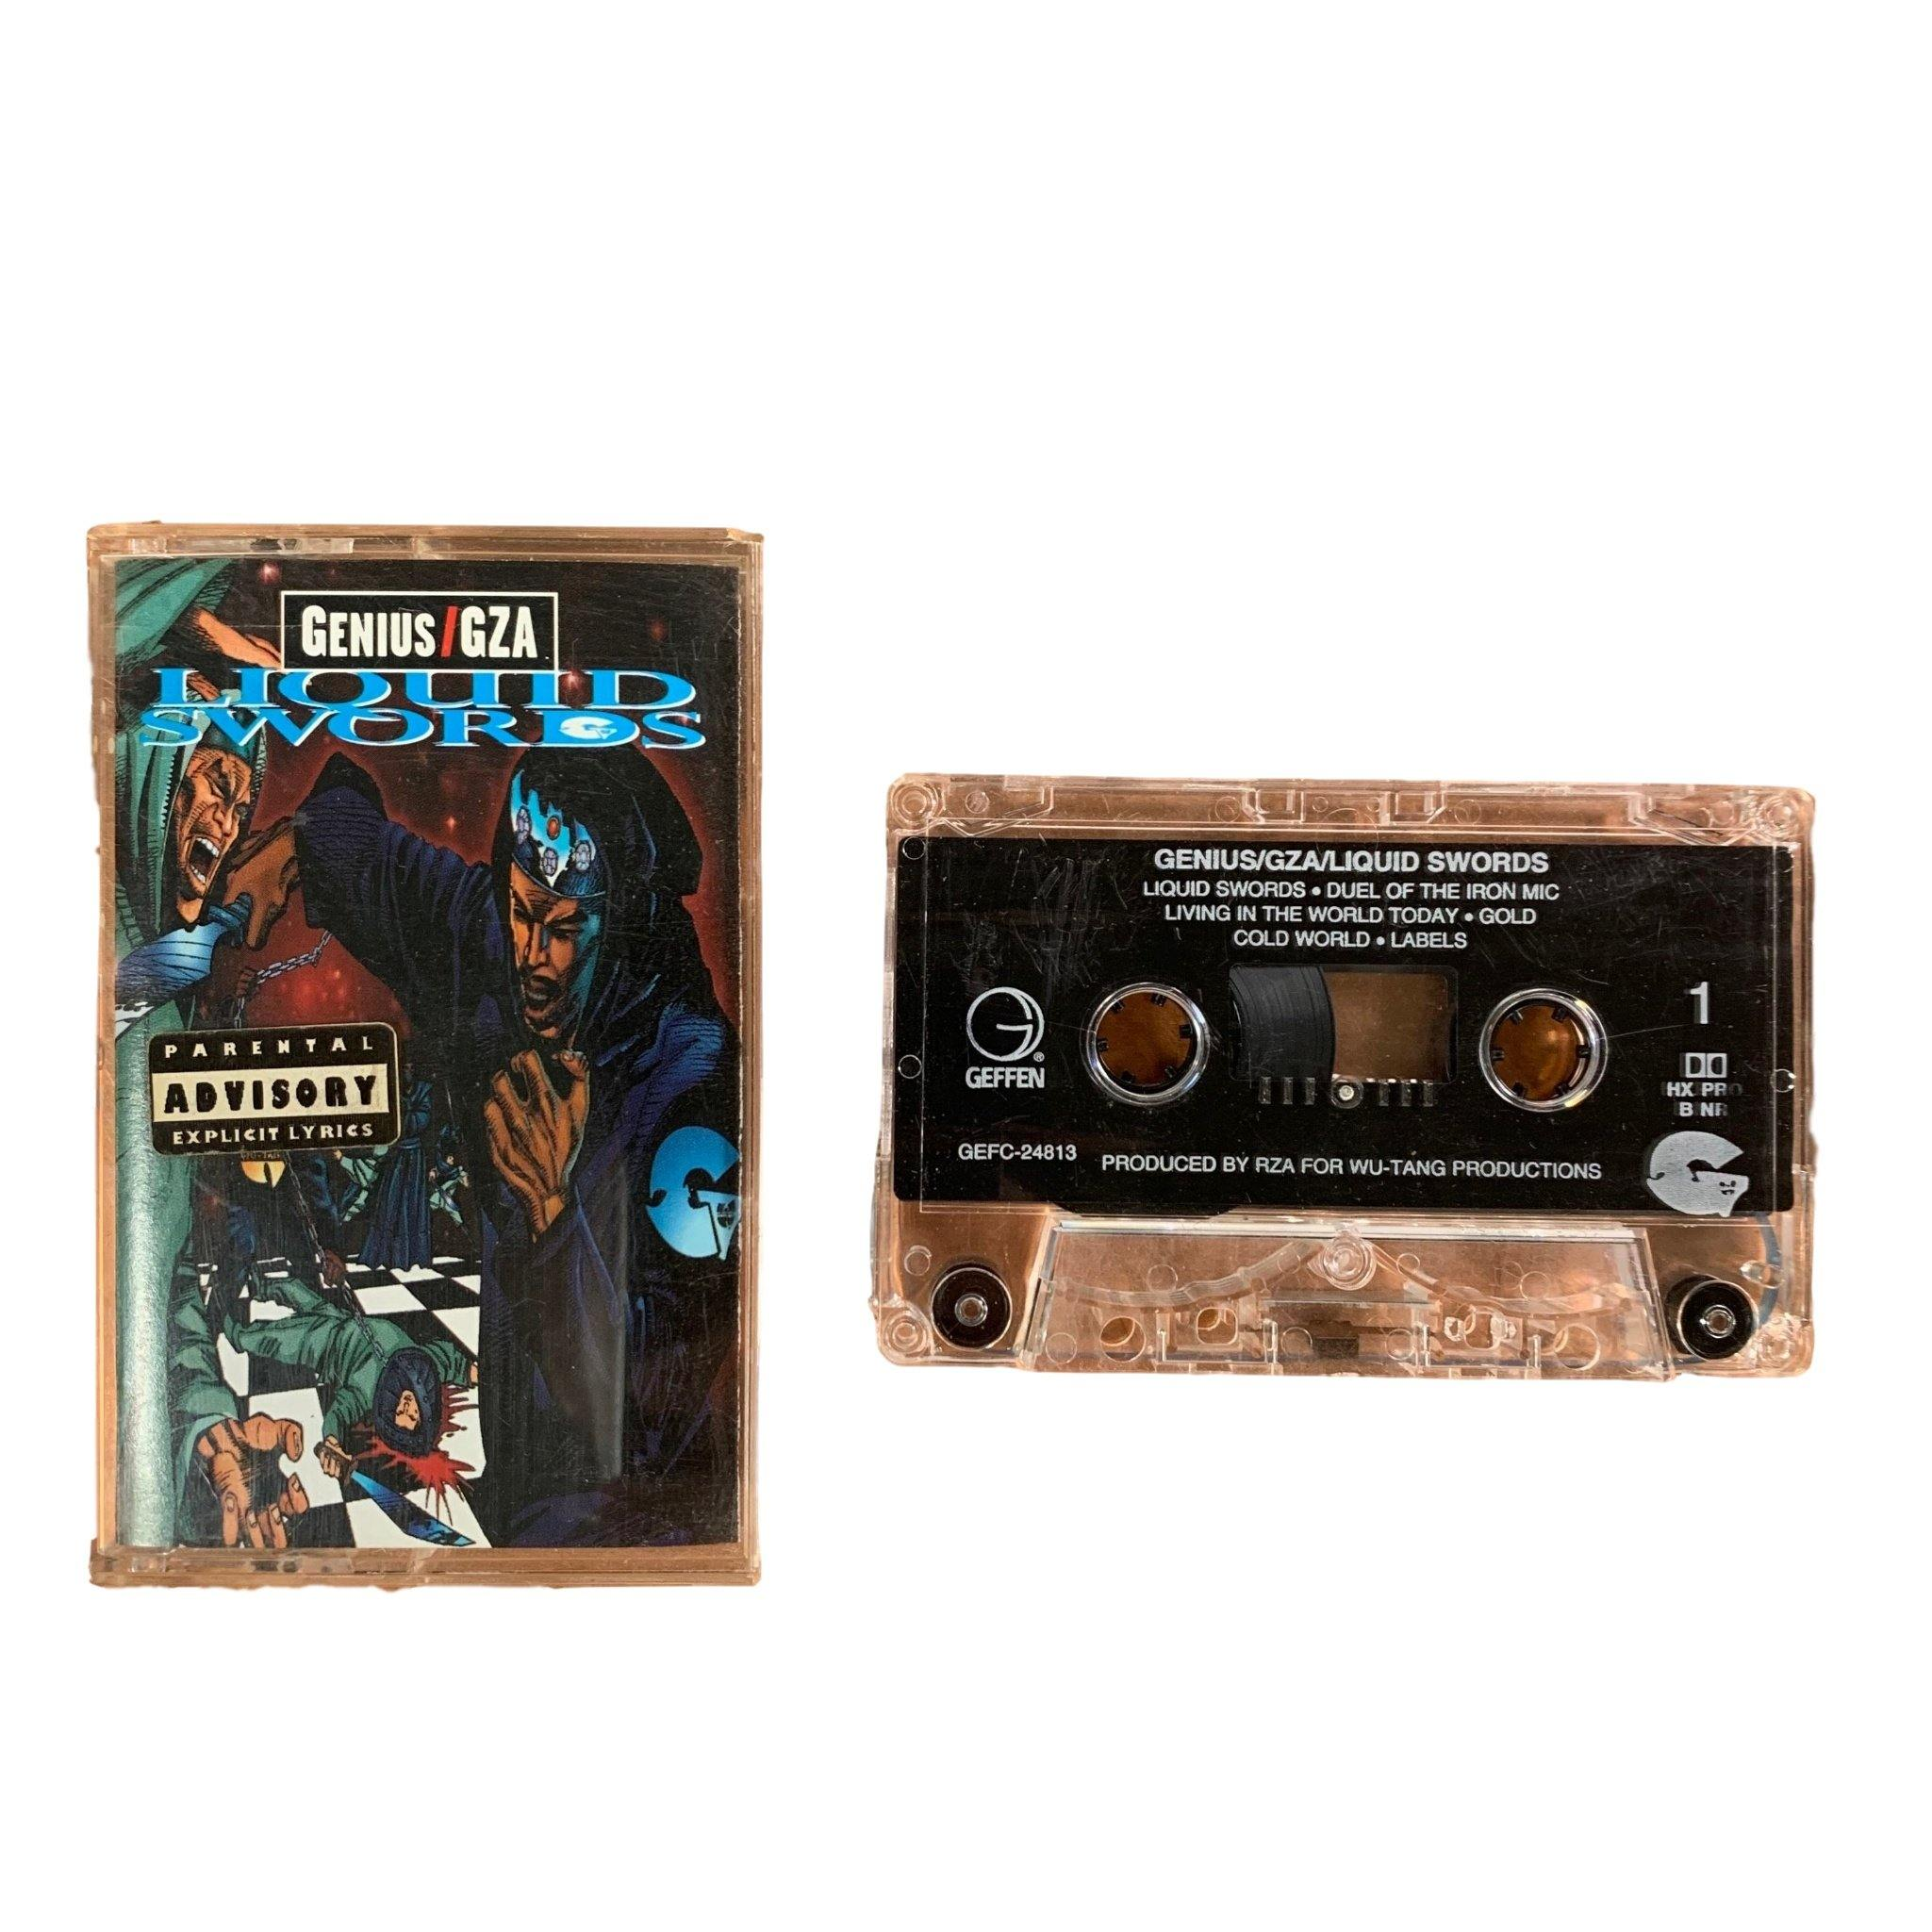 "Vintage Genius/GZA ""Liquid Swords"" Geffen Records Tape"